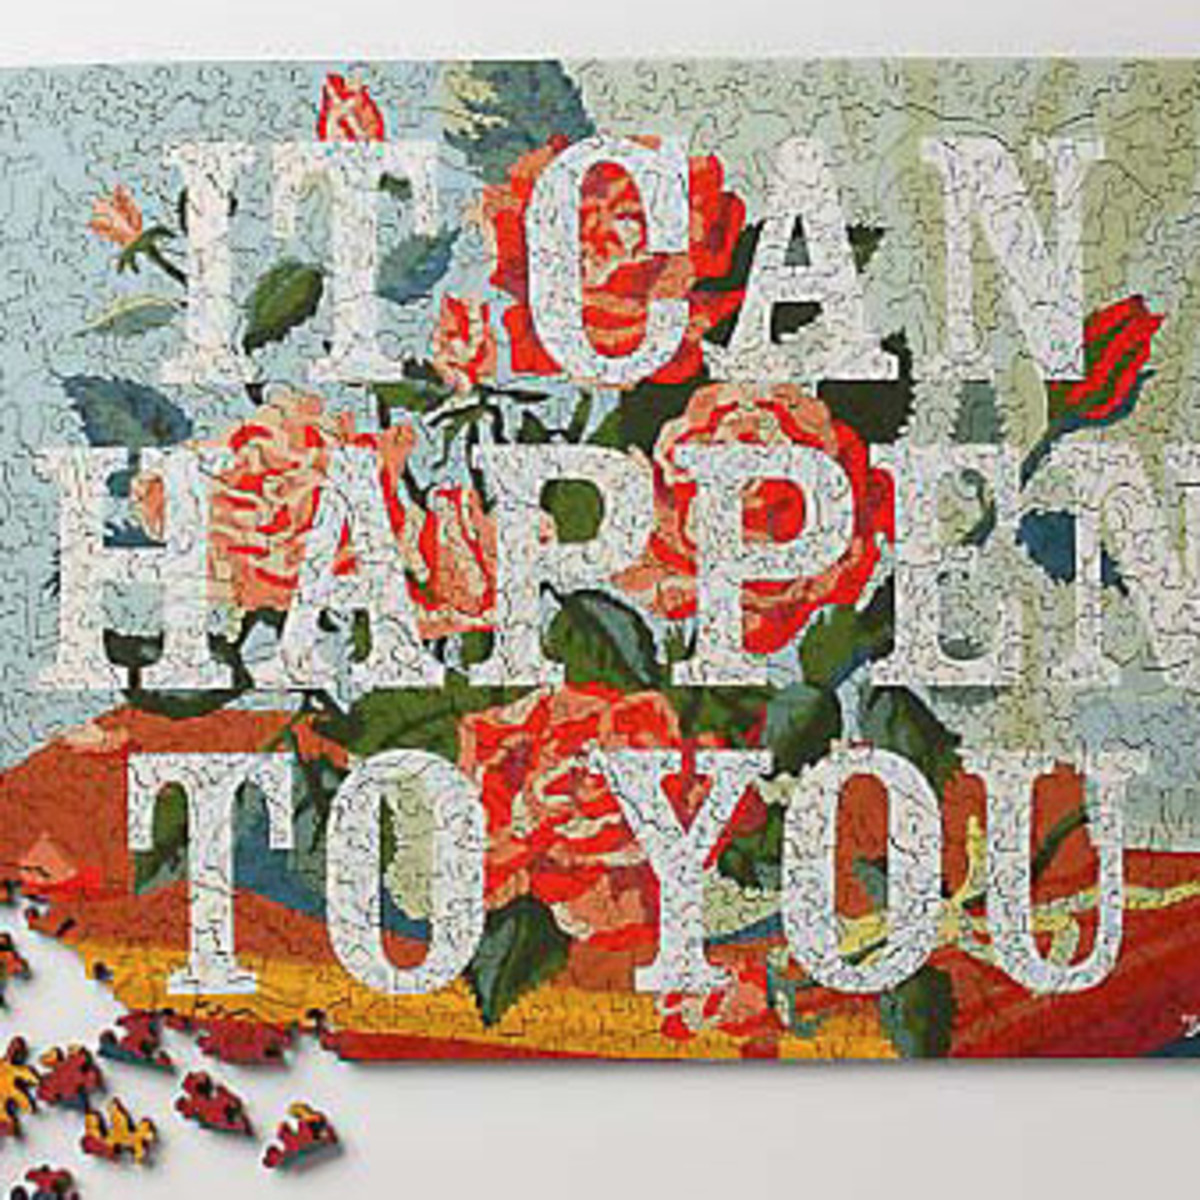 News_Trey Speegle_Anthropologie collection_Nov. 2009_puzzle